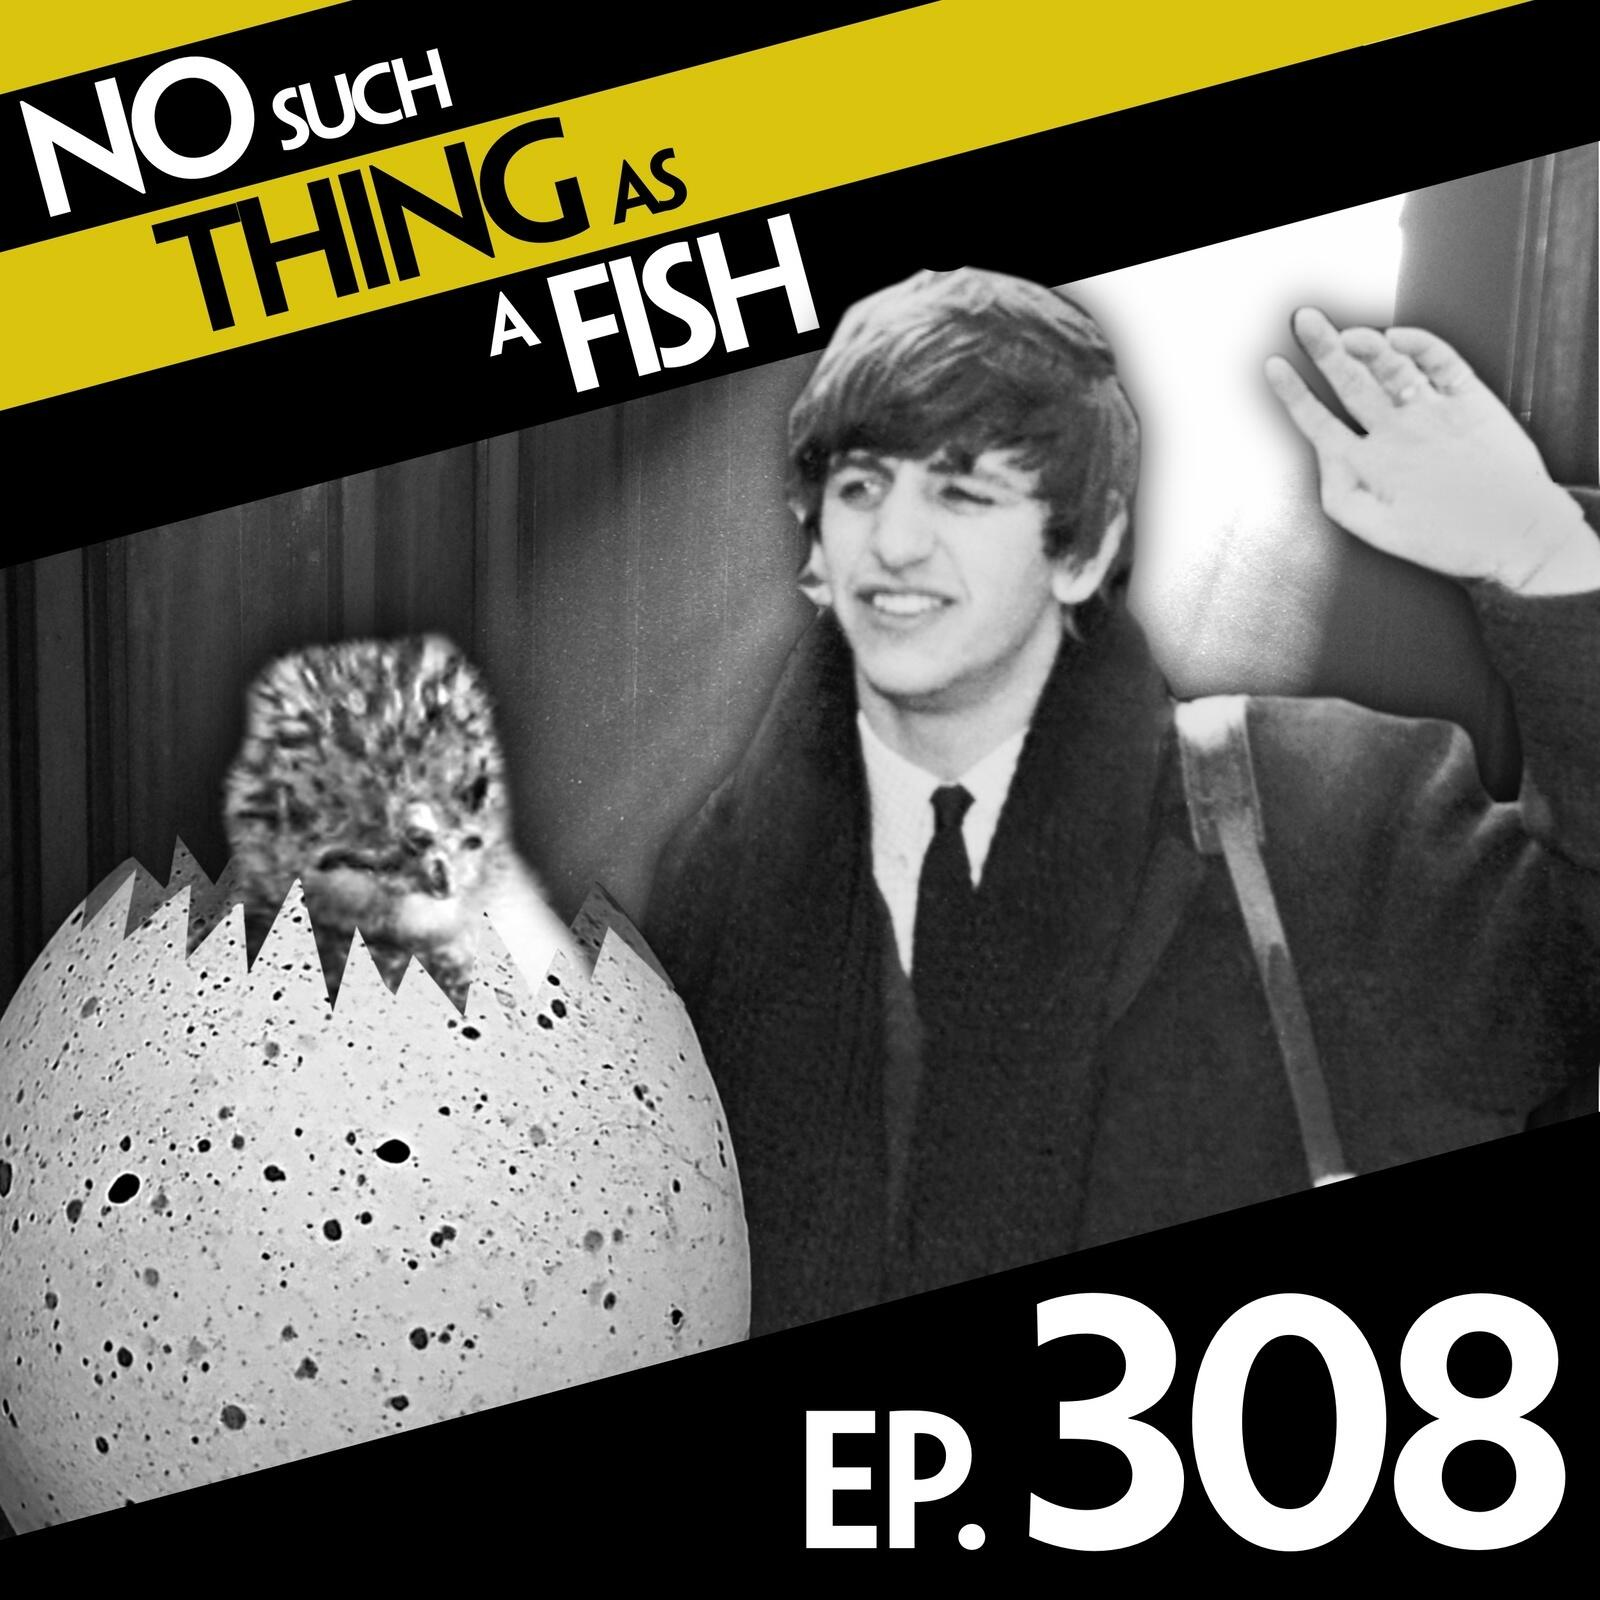 Episode 308: No Such Thing As The Land Of Flying Sheep